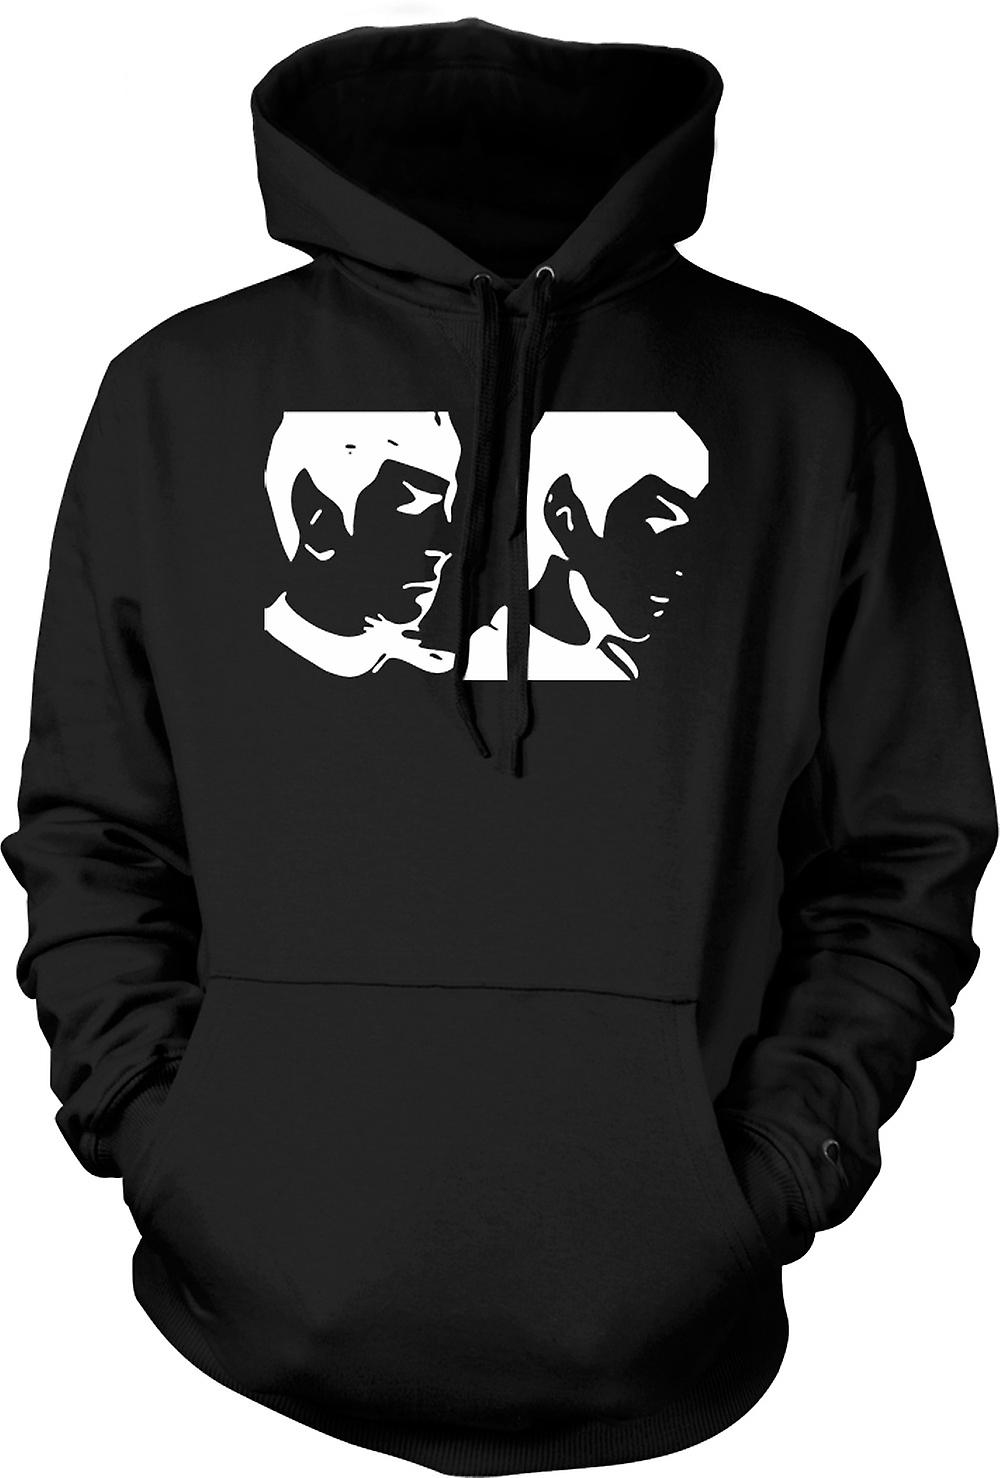 Mens Hoodie - Star Trek - Young And Old Spock